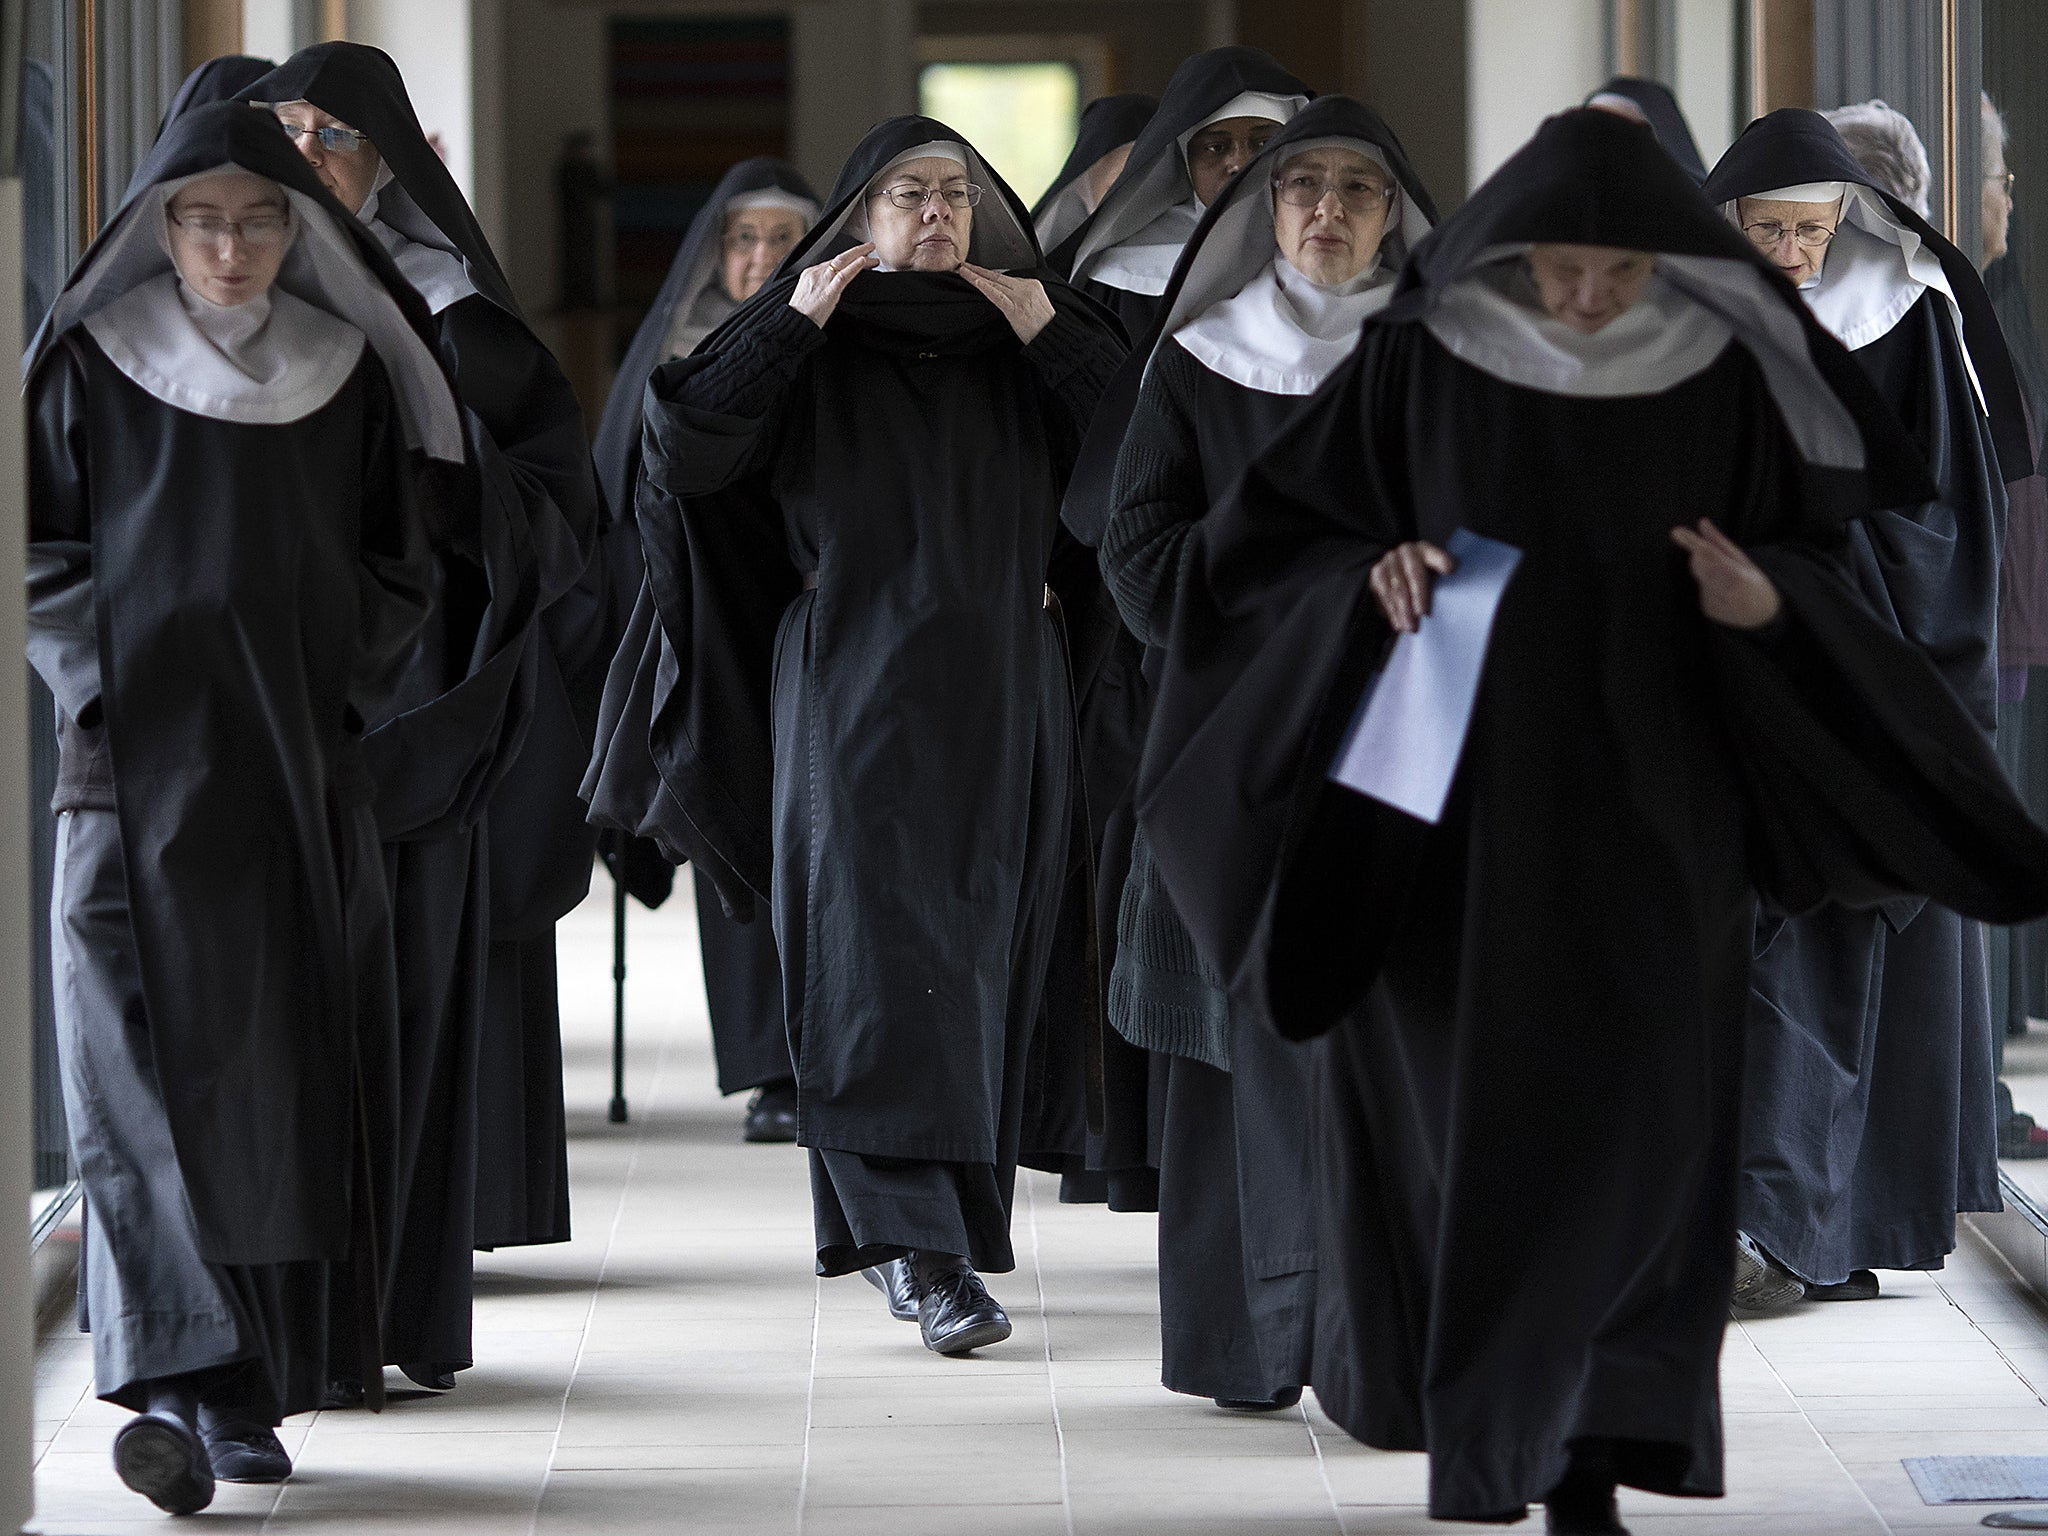 Tax Cuts >> Midterms 2018: Nuns to protest Donald Trump's tax cuts outside Mar-a-Lago resort ahead of ...